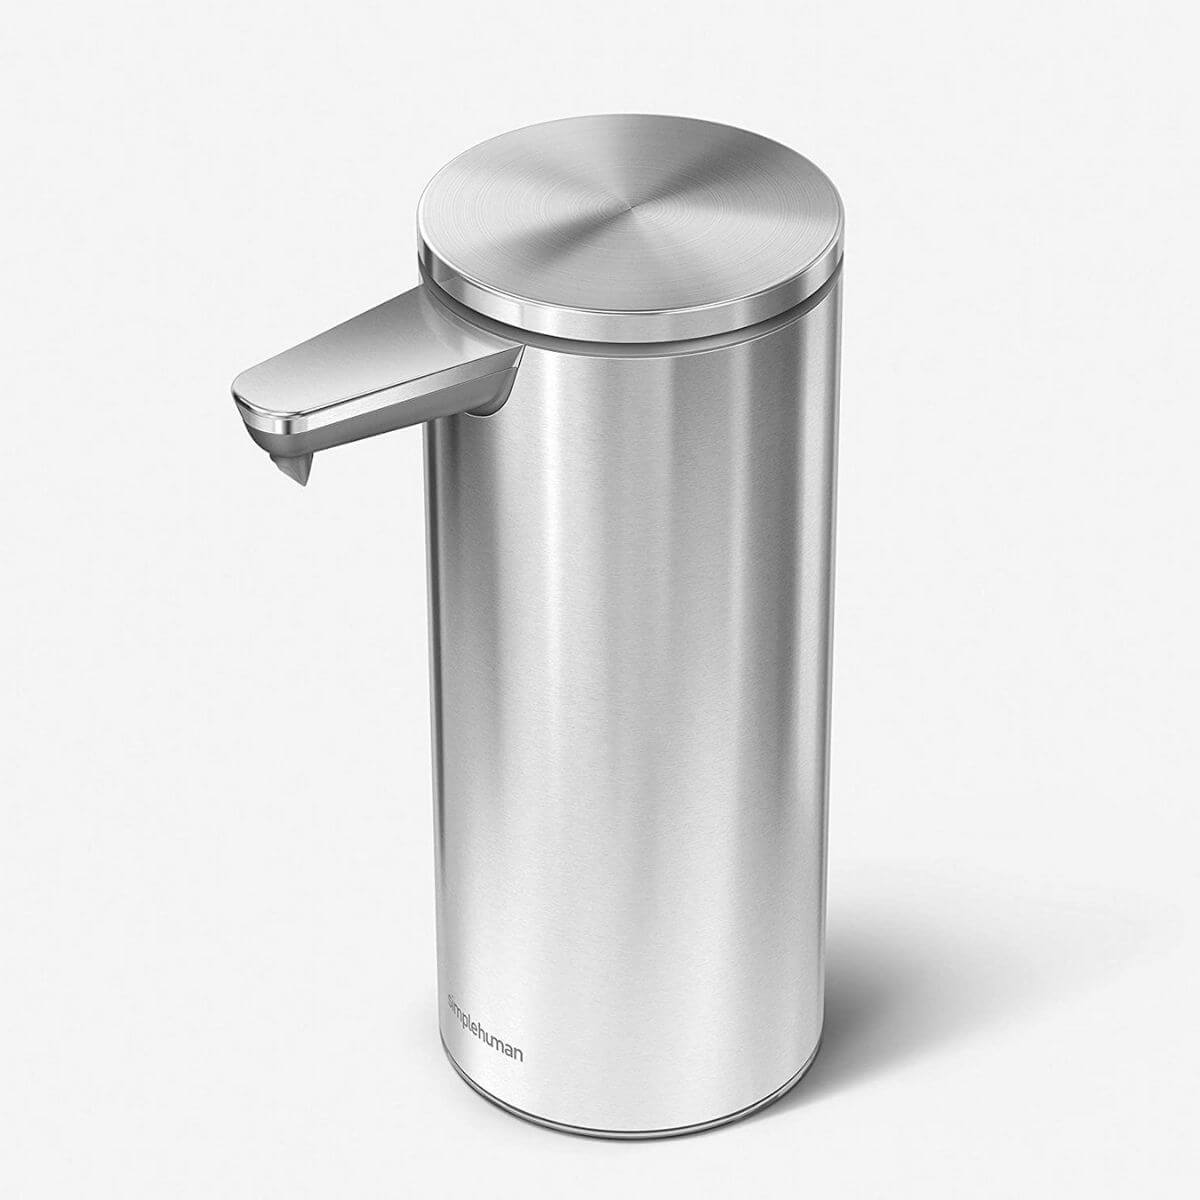 Brushed stainless steel touch-free soap dispenser.